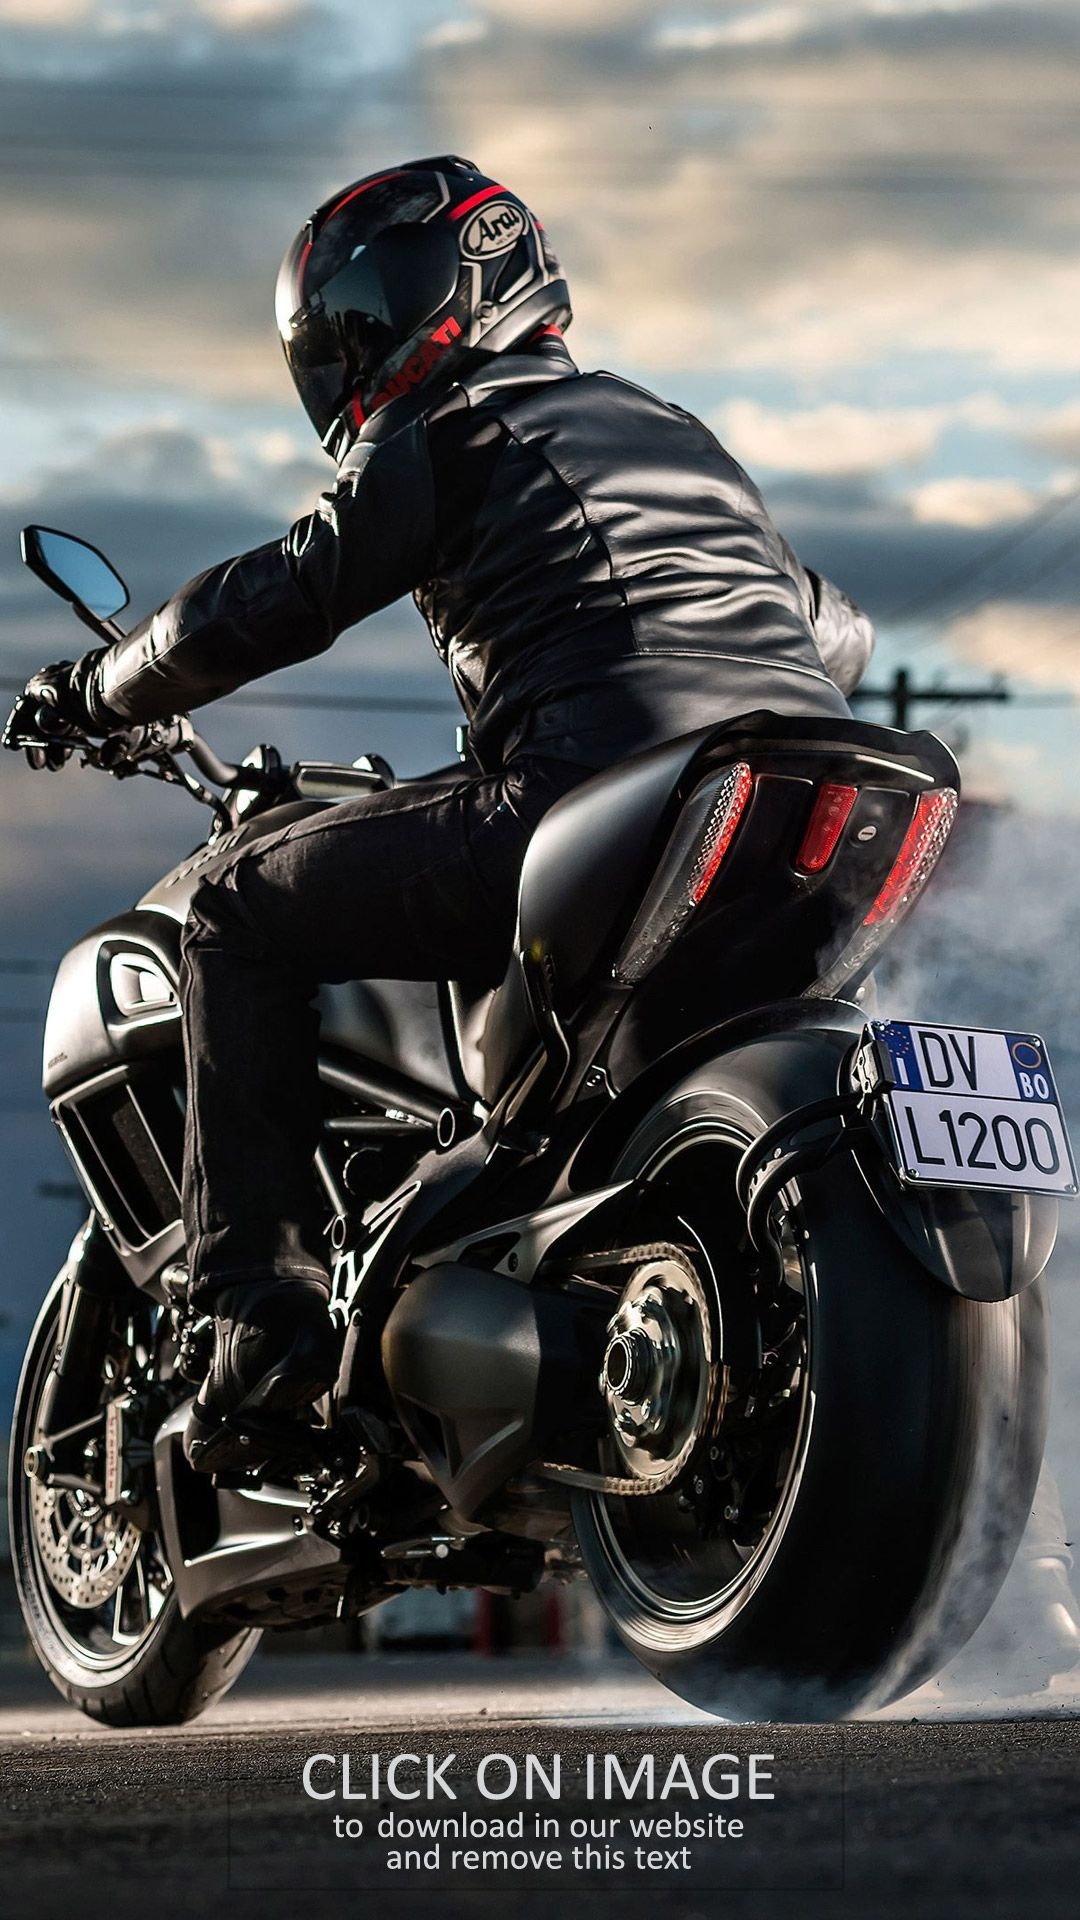 Wallpaper Motorcycle High Resolution 1080 x 1920 HD for iPhone and Android